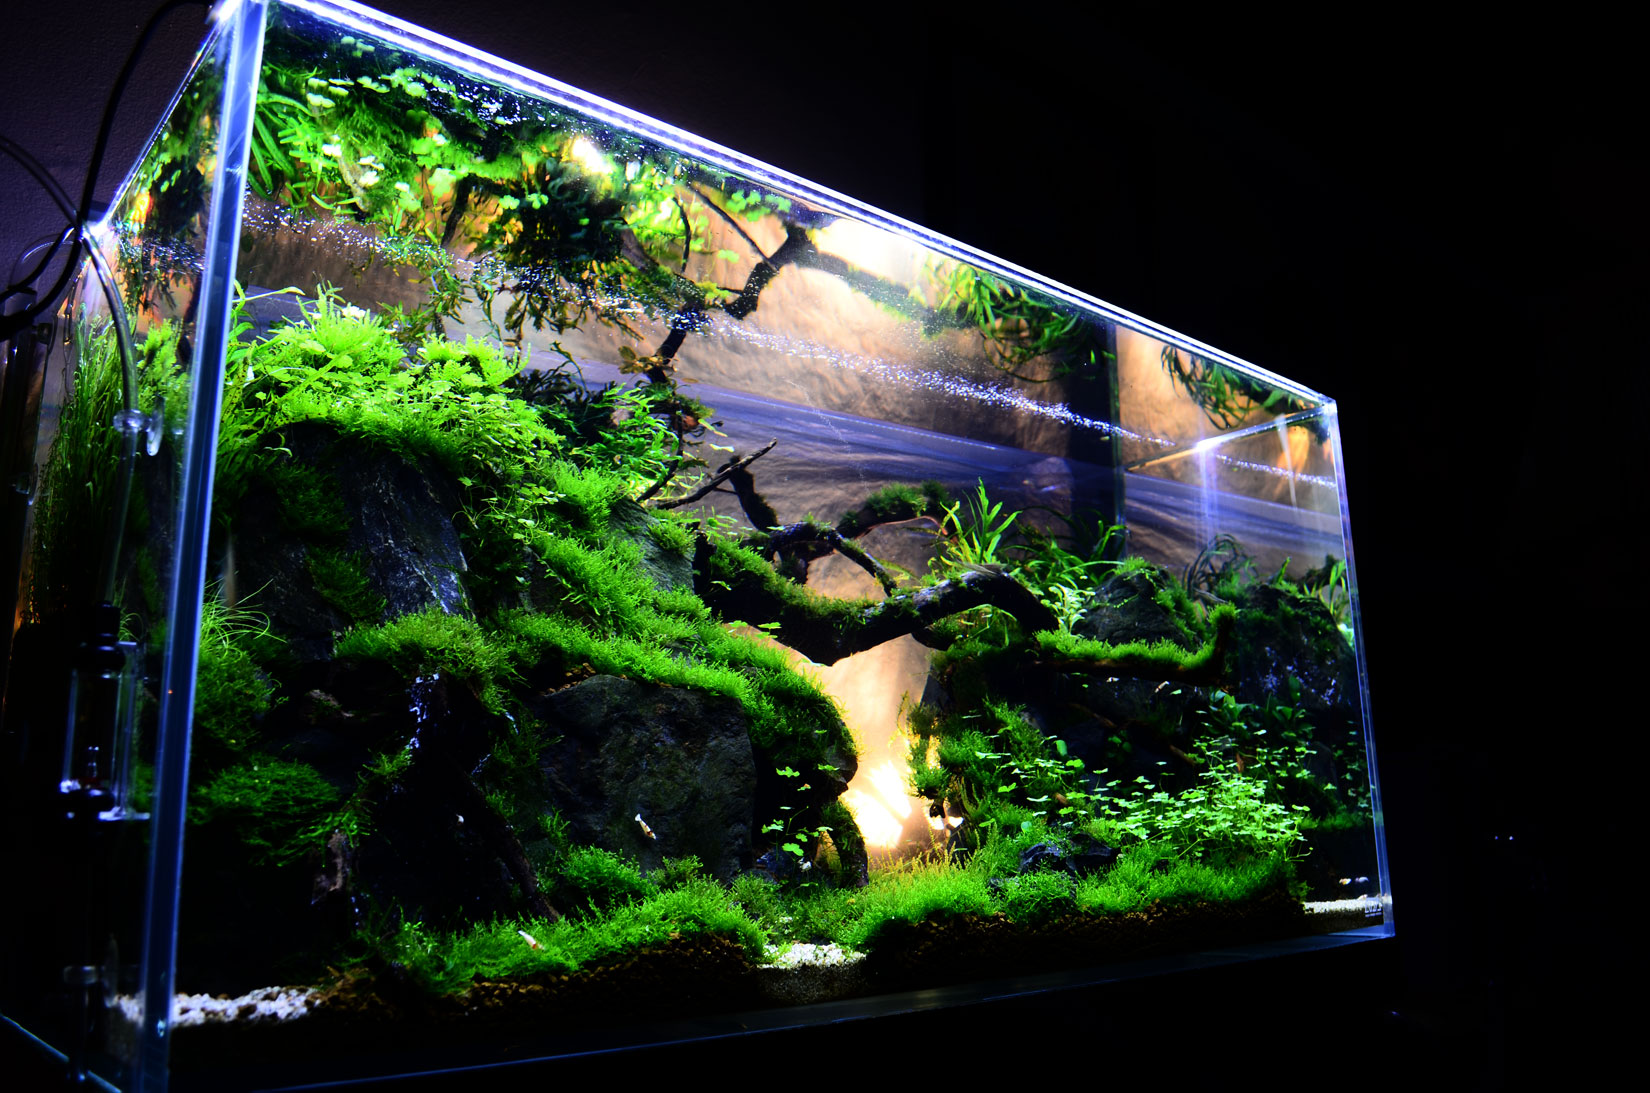 Takashi Amano Aquascaping Can Be Described As Gardening Underwater U2013as It  Involves The Arrangement Of A Variety Of Aquatic Plants, Rocks, St.